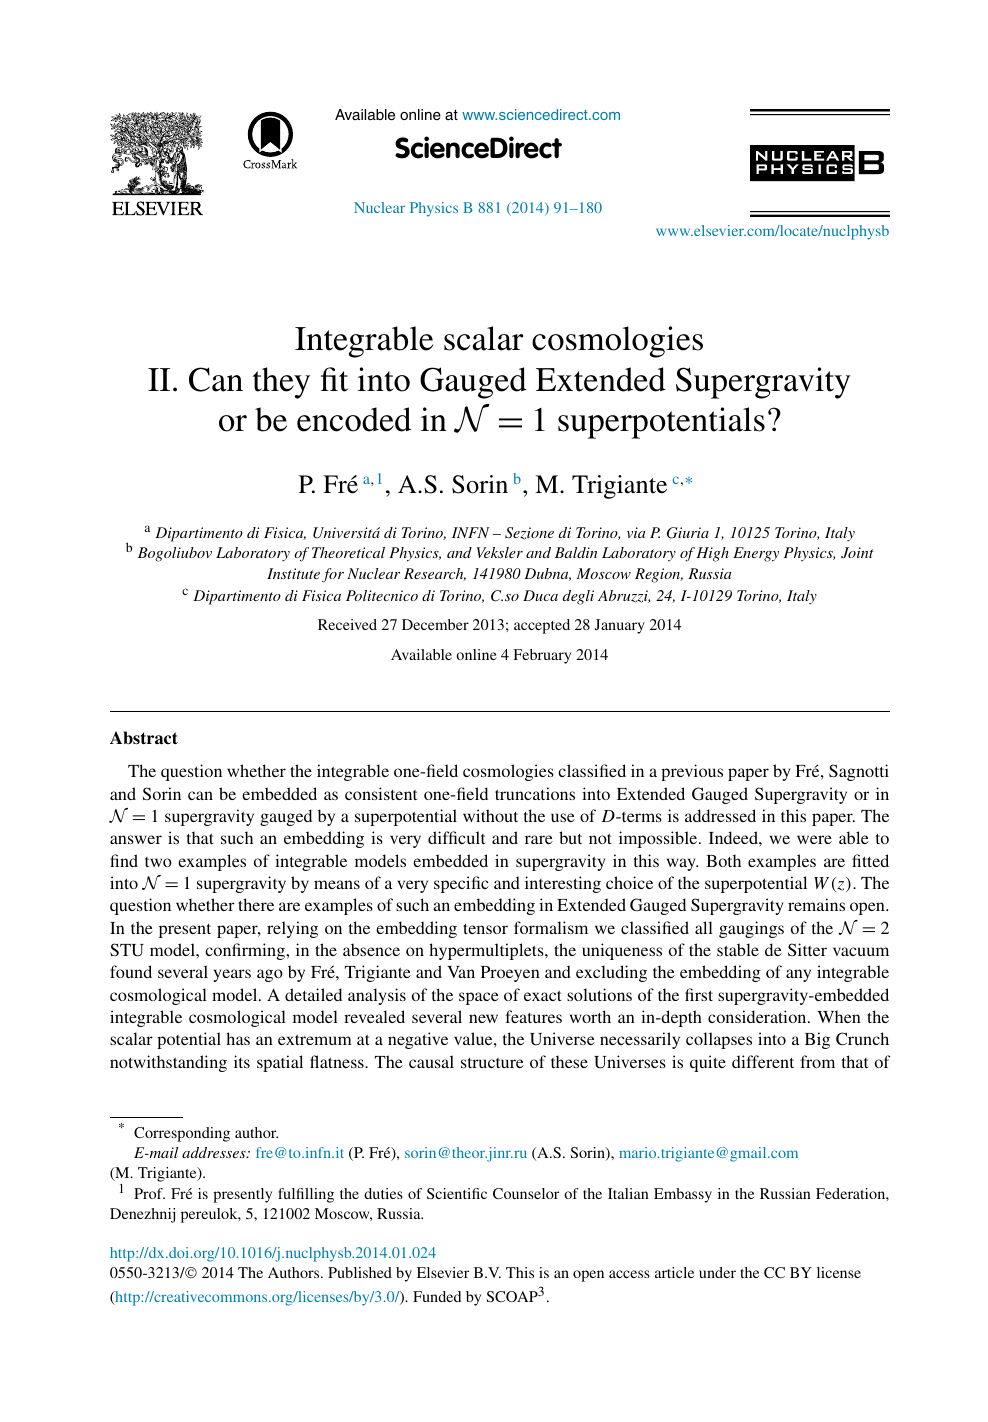 Integrable scalar cosmologies – topic of research paper in Physical